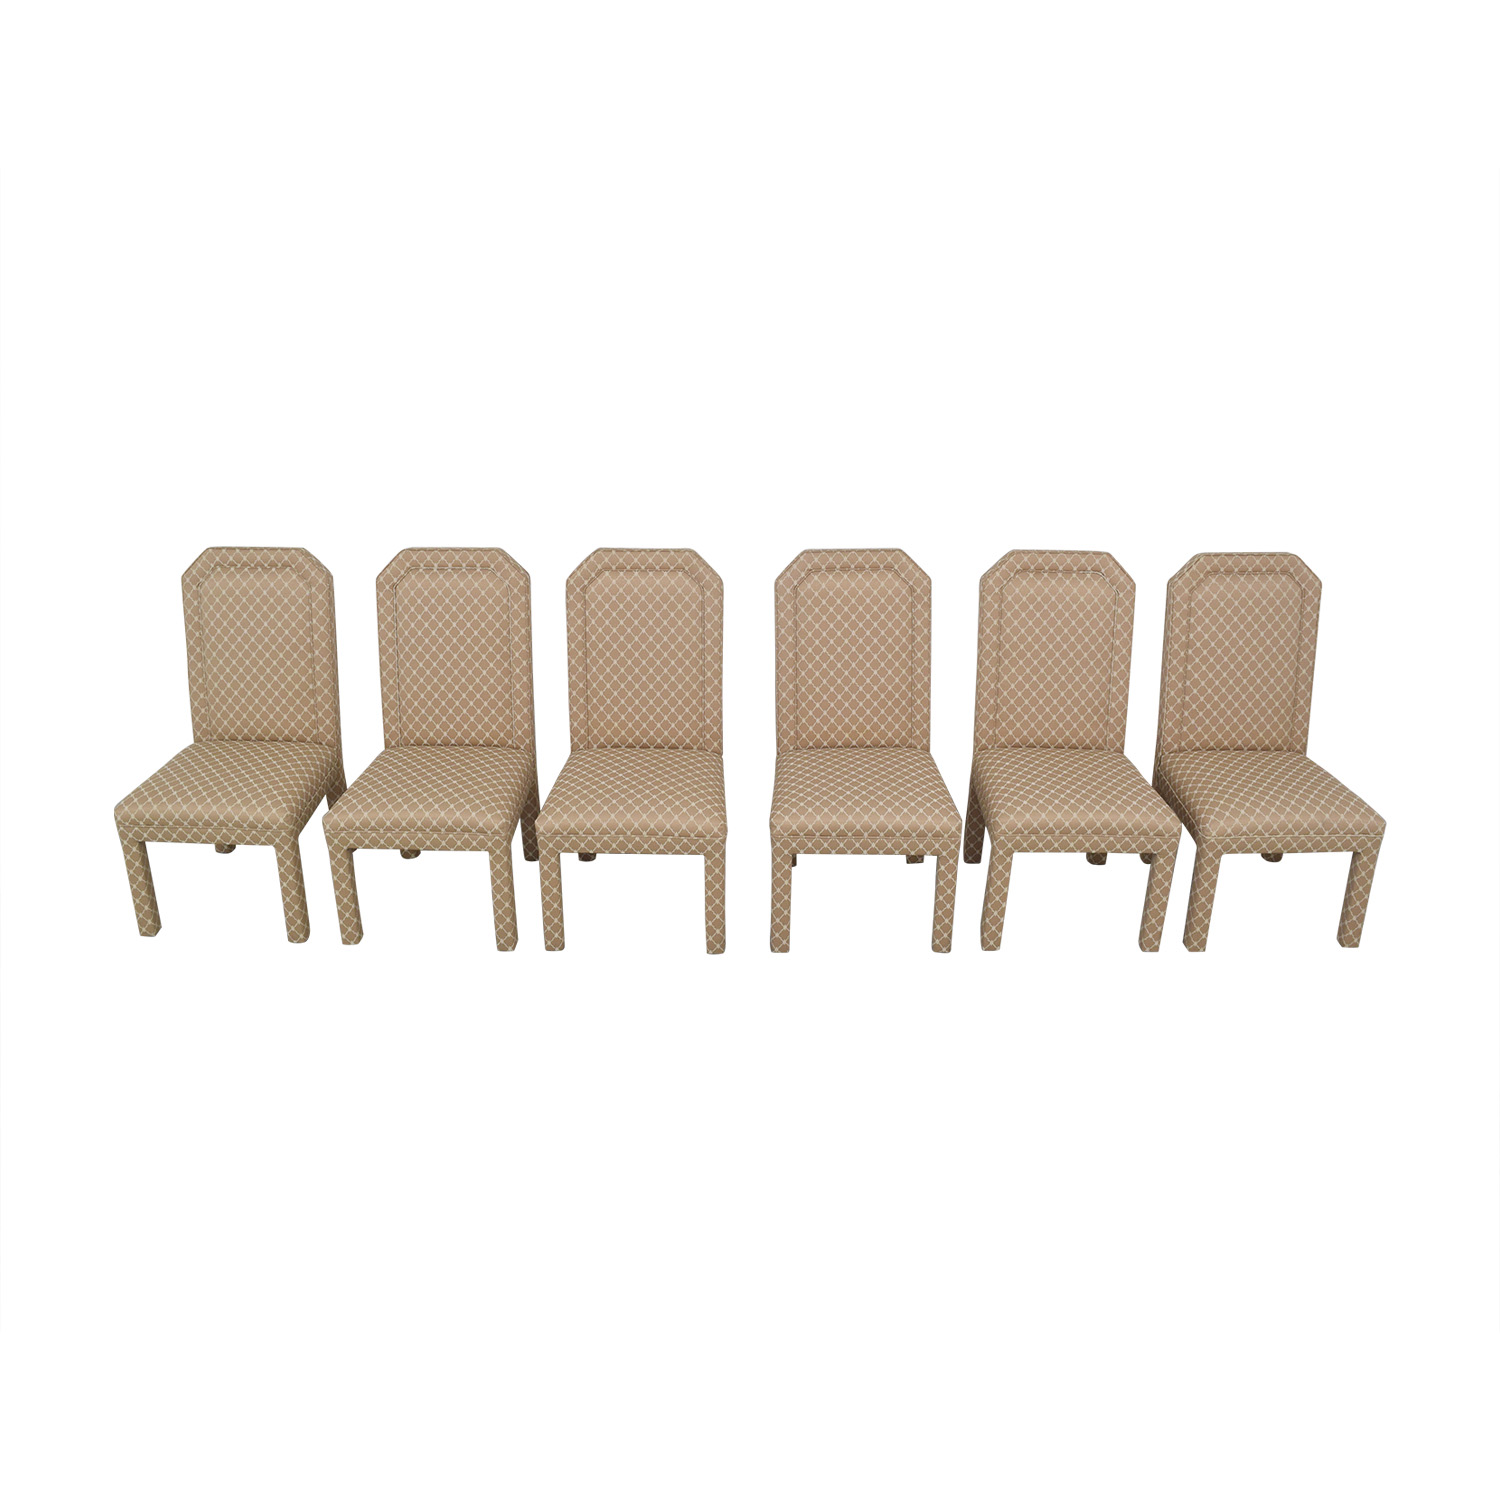 Dining chairs Chairs